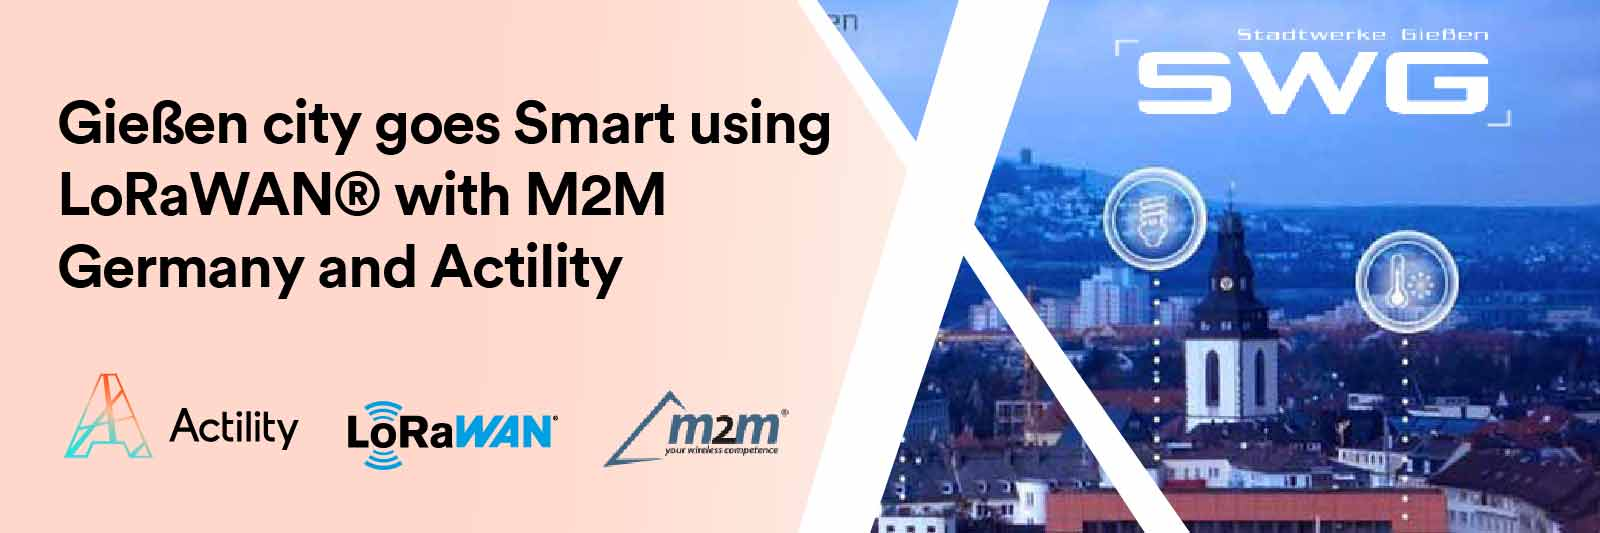 Header for M2M Press release